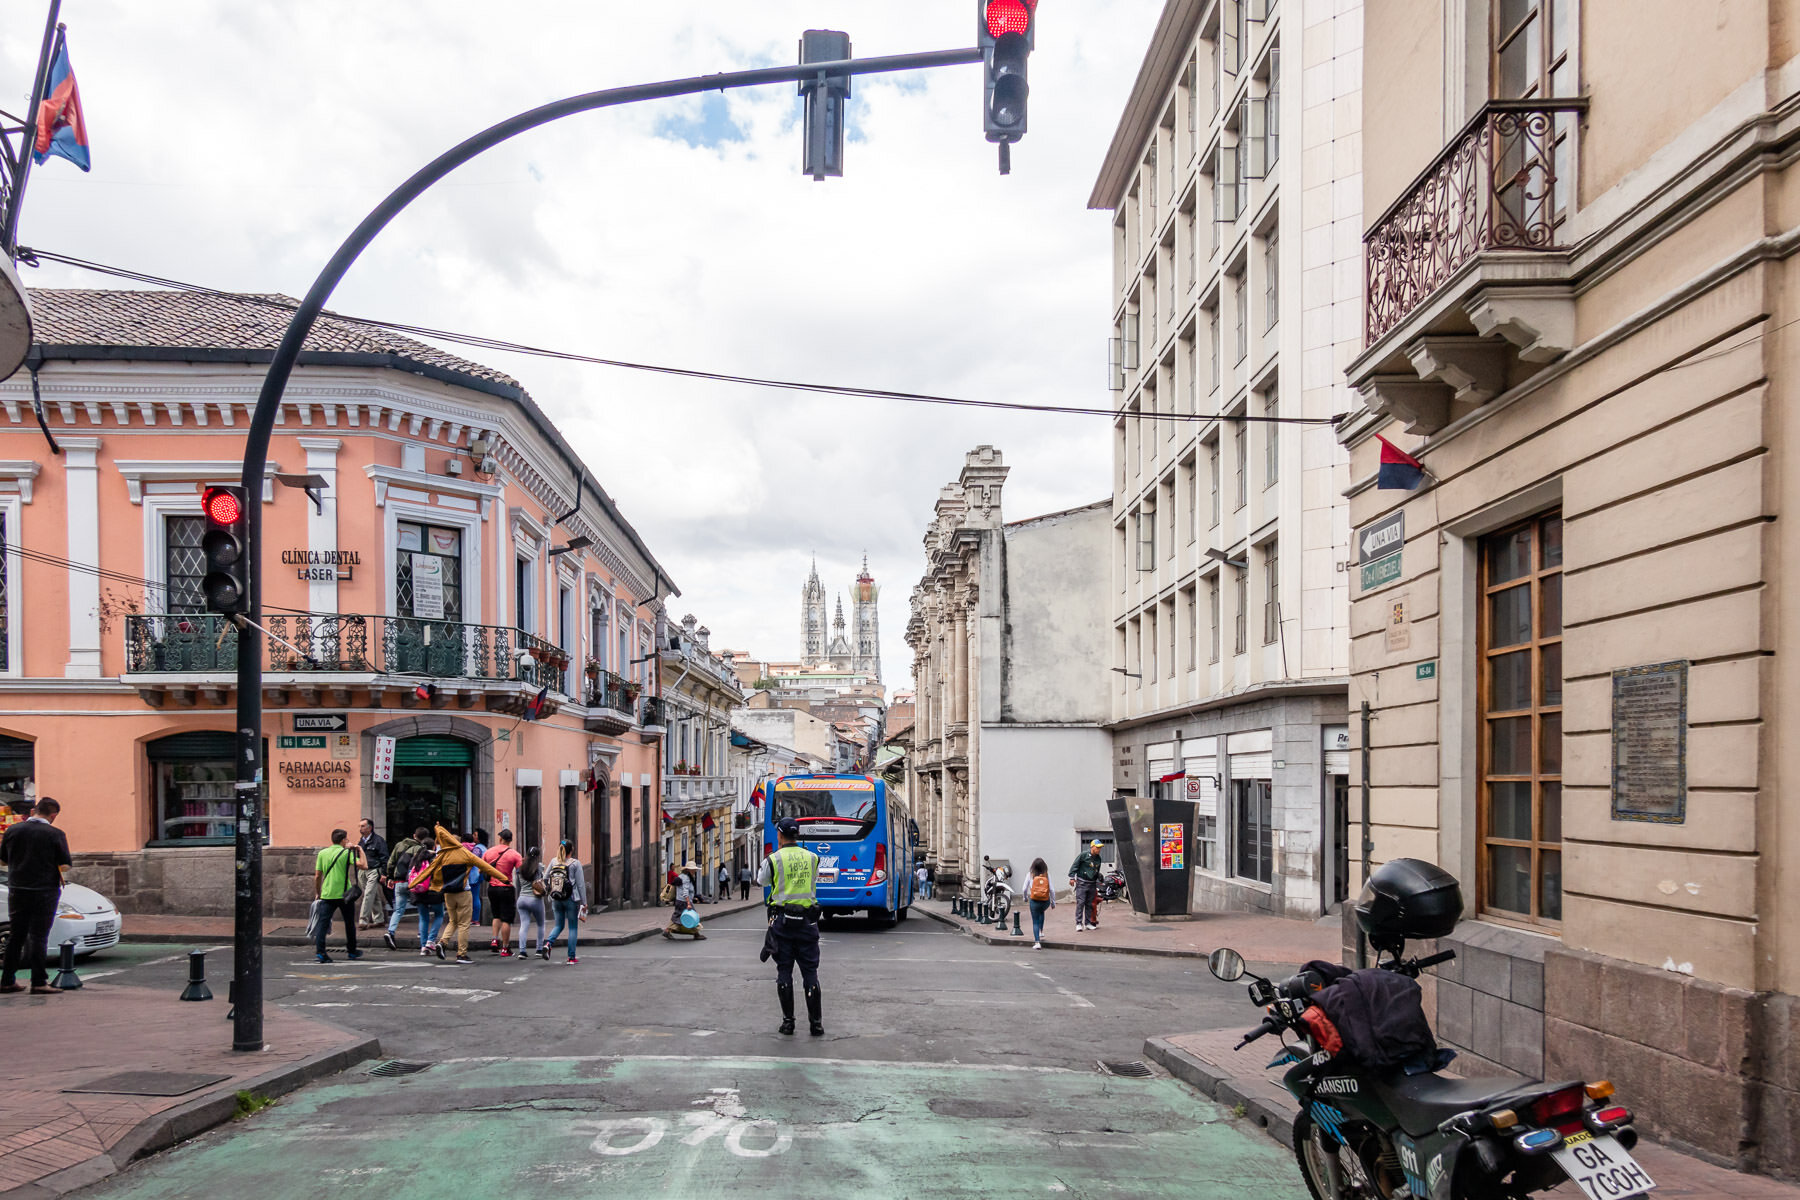 2018.08.23 Downtown Quito ©詹妮弗·卡尔摄影-8-34.jpg